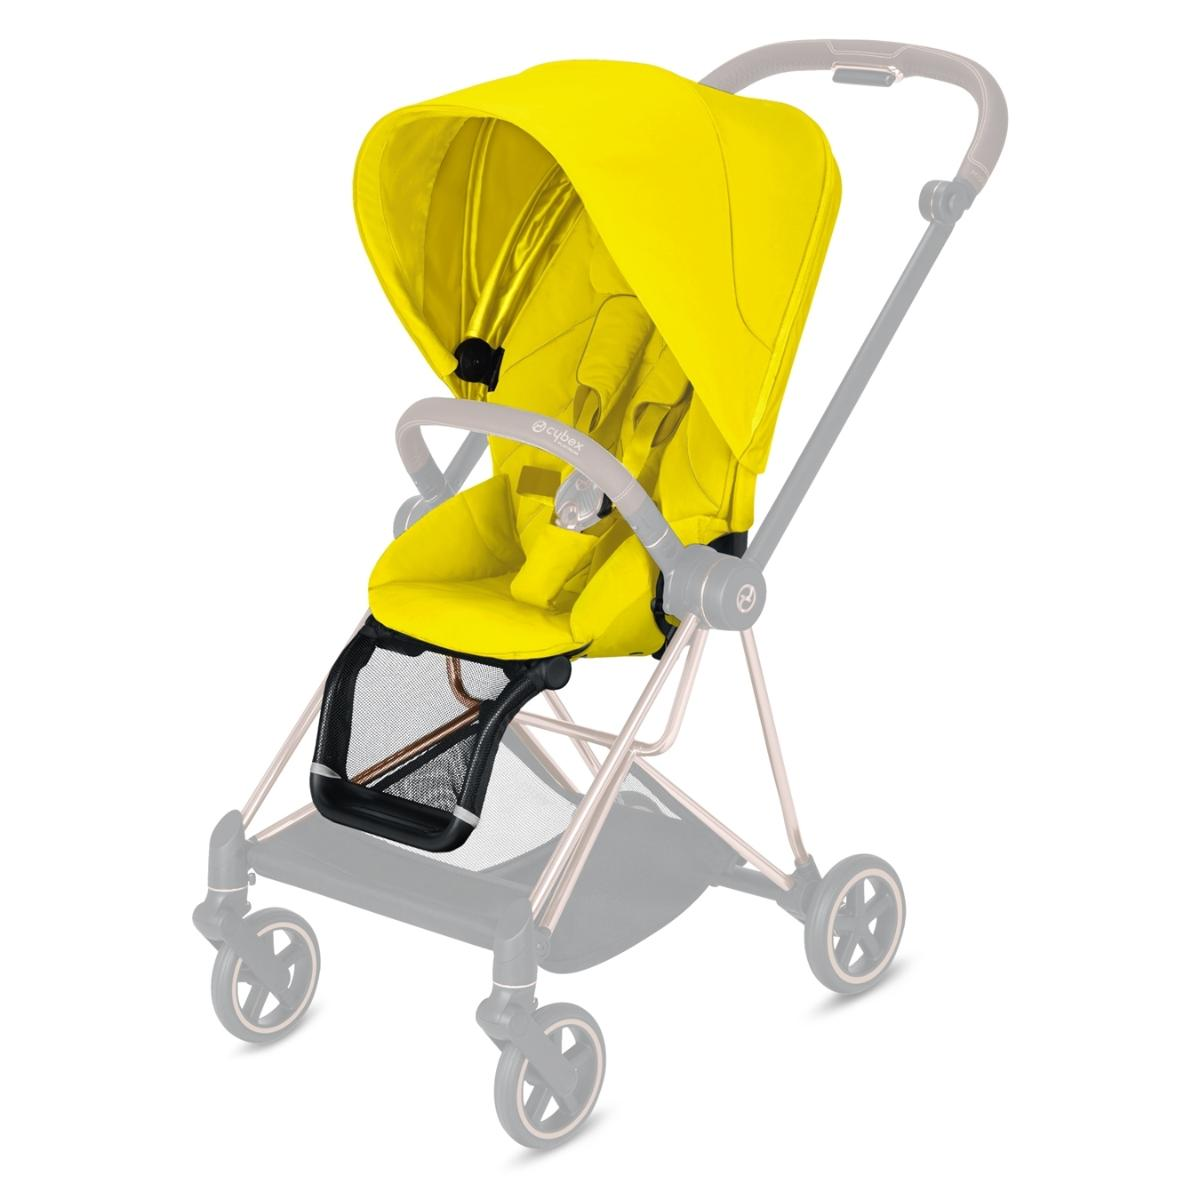 Cybex Κάθισμα Καροτσιού Mios Seat Pack, Mustard Yellow